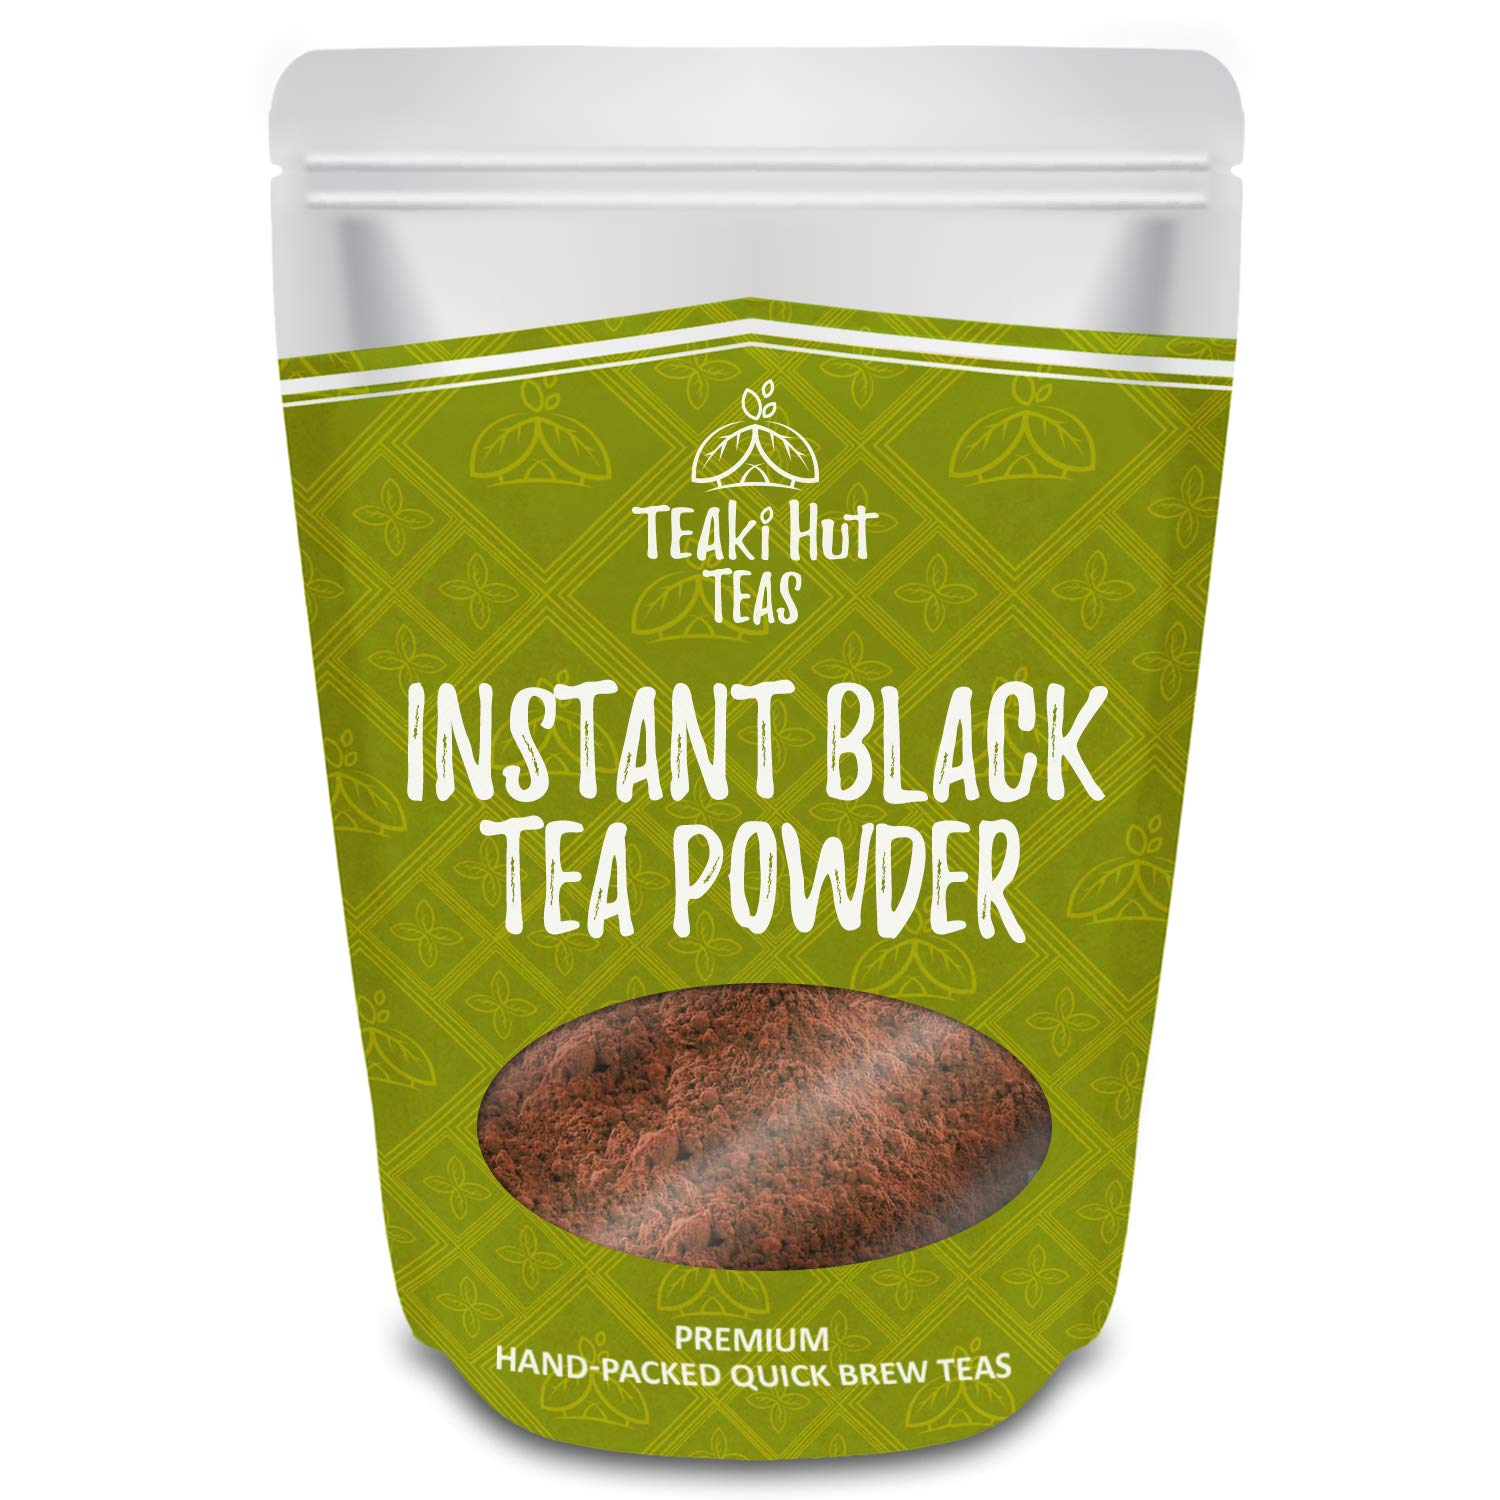 TEAki Hut Instant Black Tea Powder | Zero-Cholesterol Powdered Black Tea Leaves | Unsweetened Instant Tea Mix for Hot & Cold Beverages | Great for Baked Goods, Lattes, & Smoothies | 113 Servings